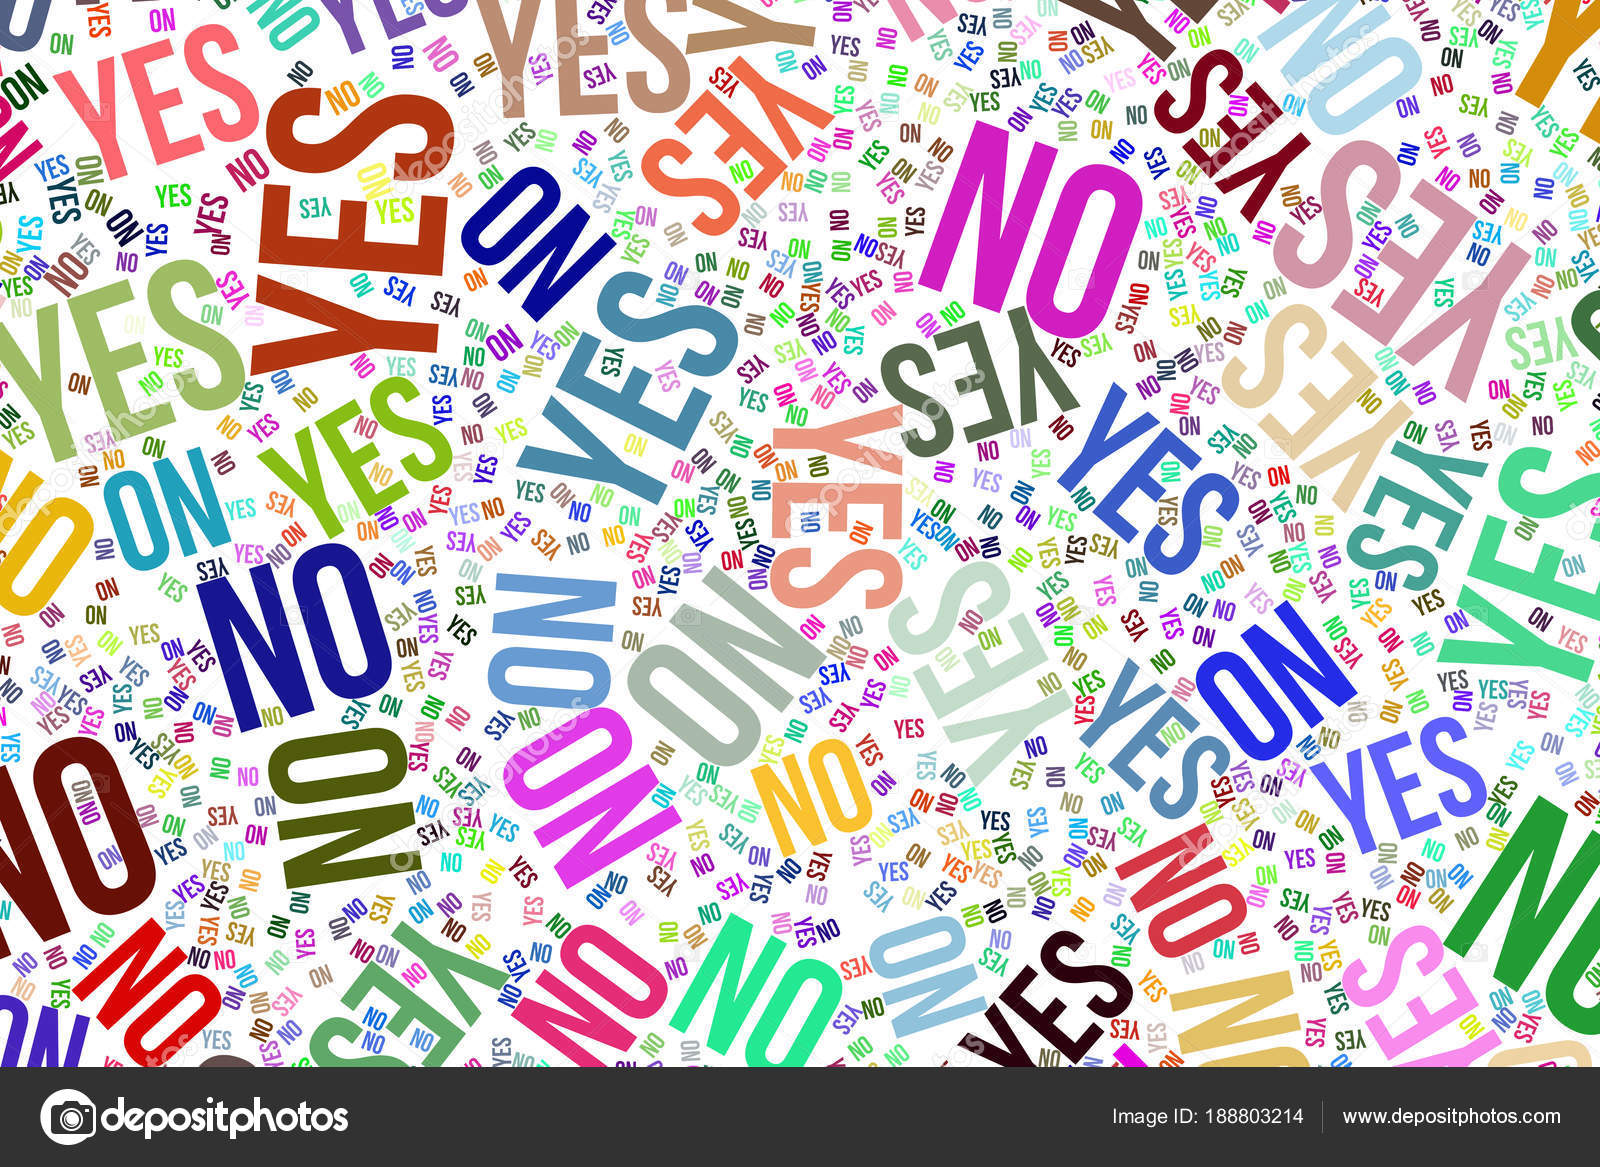 Yes or no, decision & motivation conceptual word cloud for web page, graphic design, catalog, wallpaper or background. — Photo by bentchang